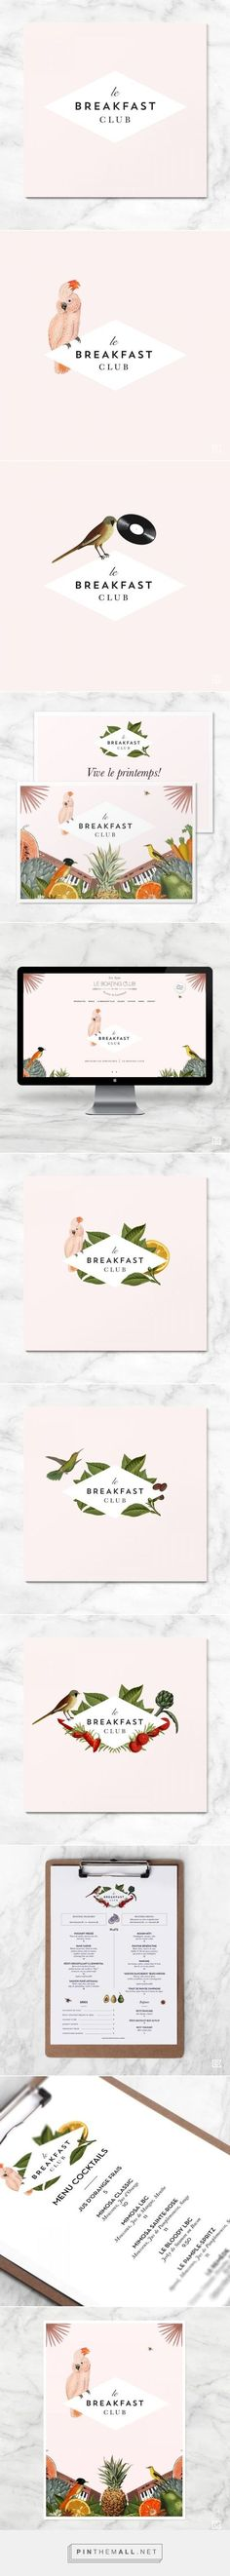 Le Breakfast Club Branding on Behance